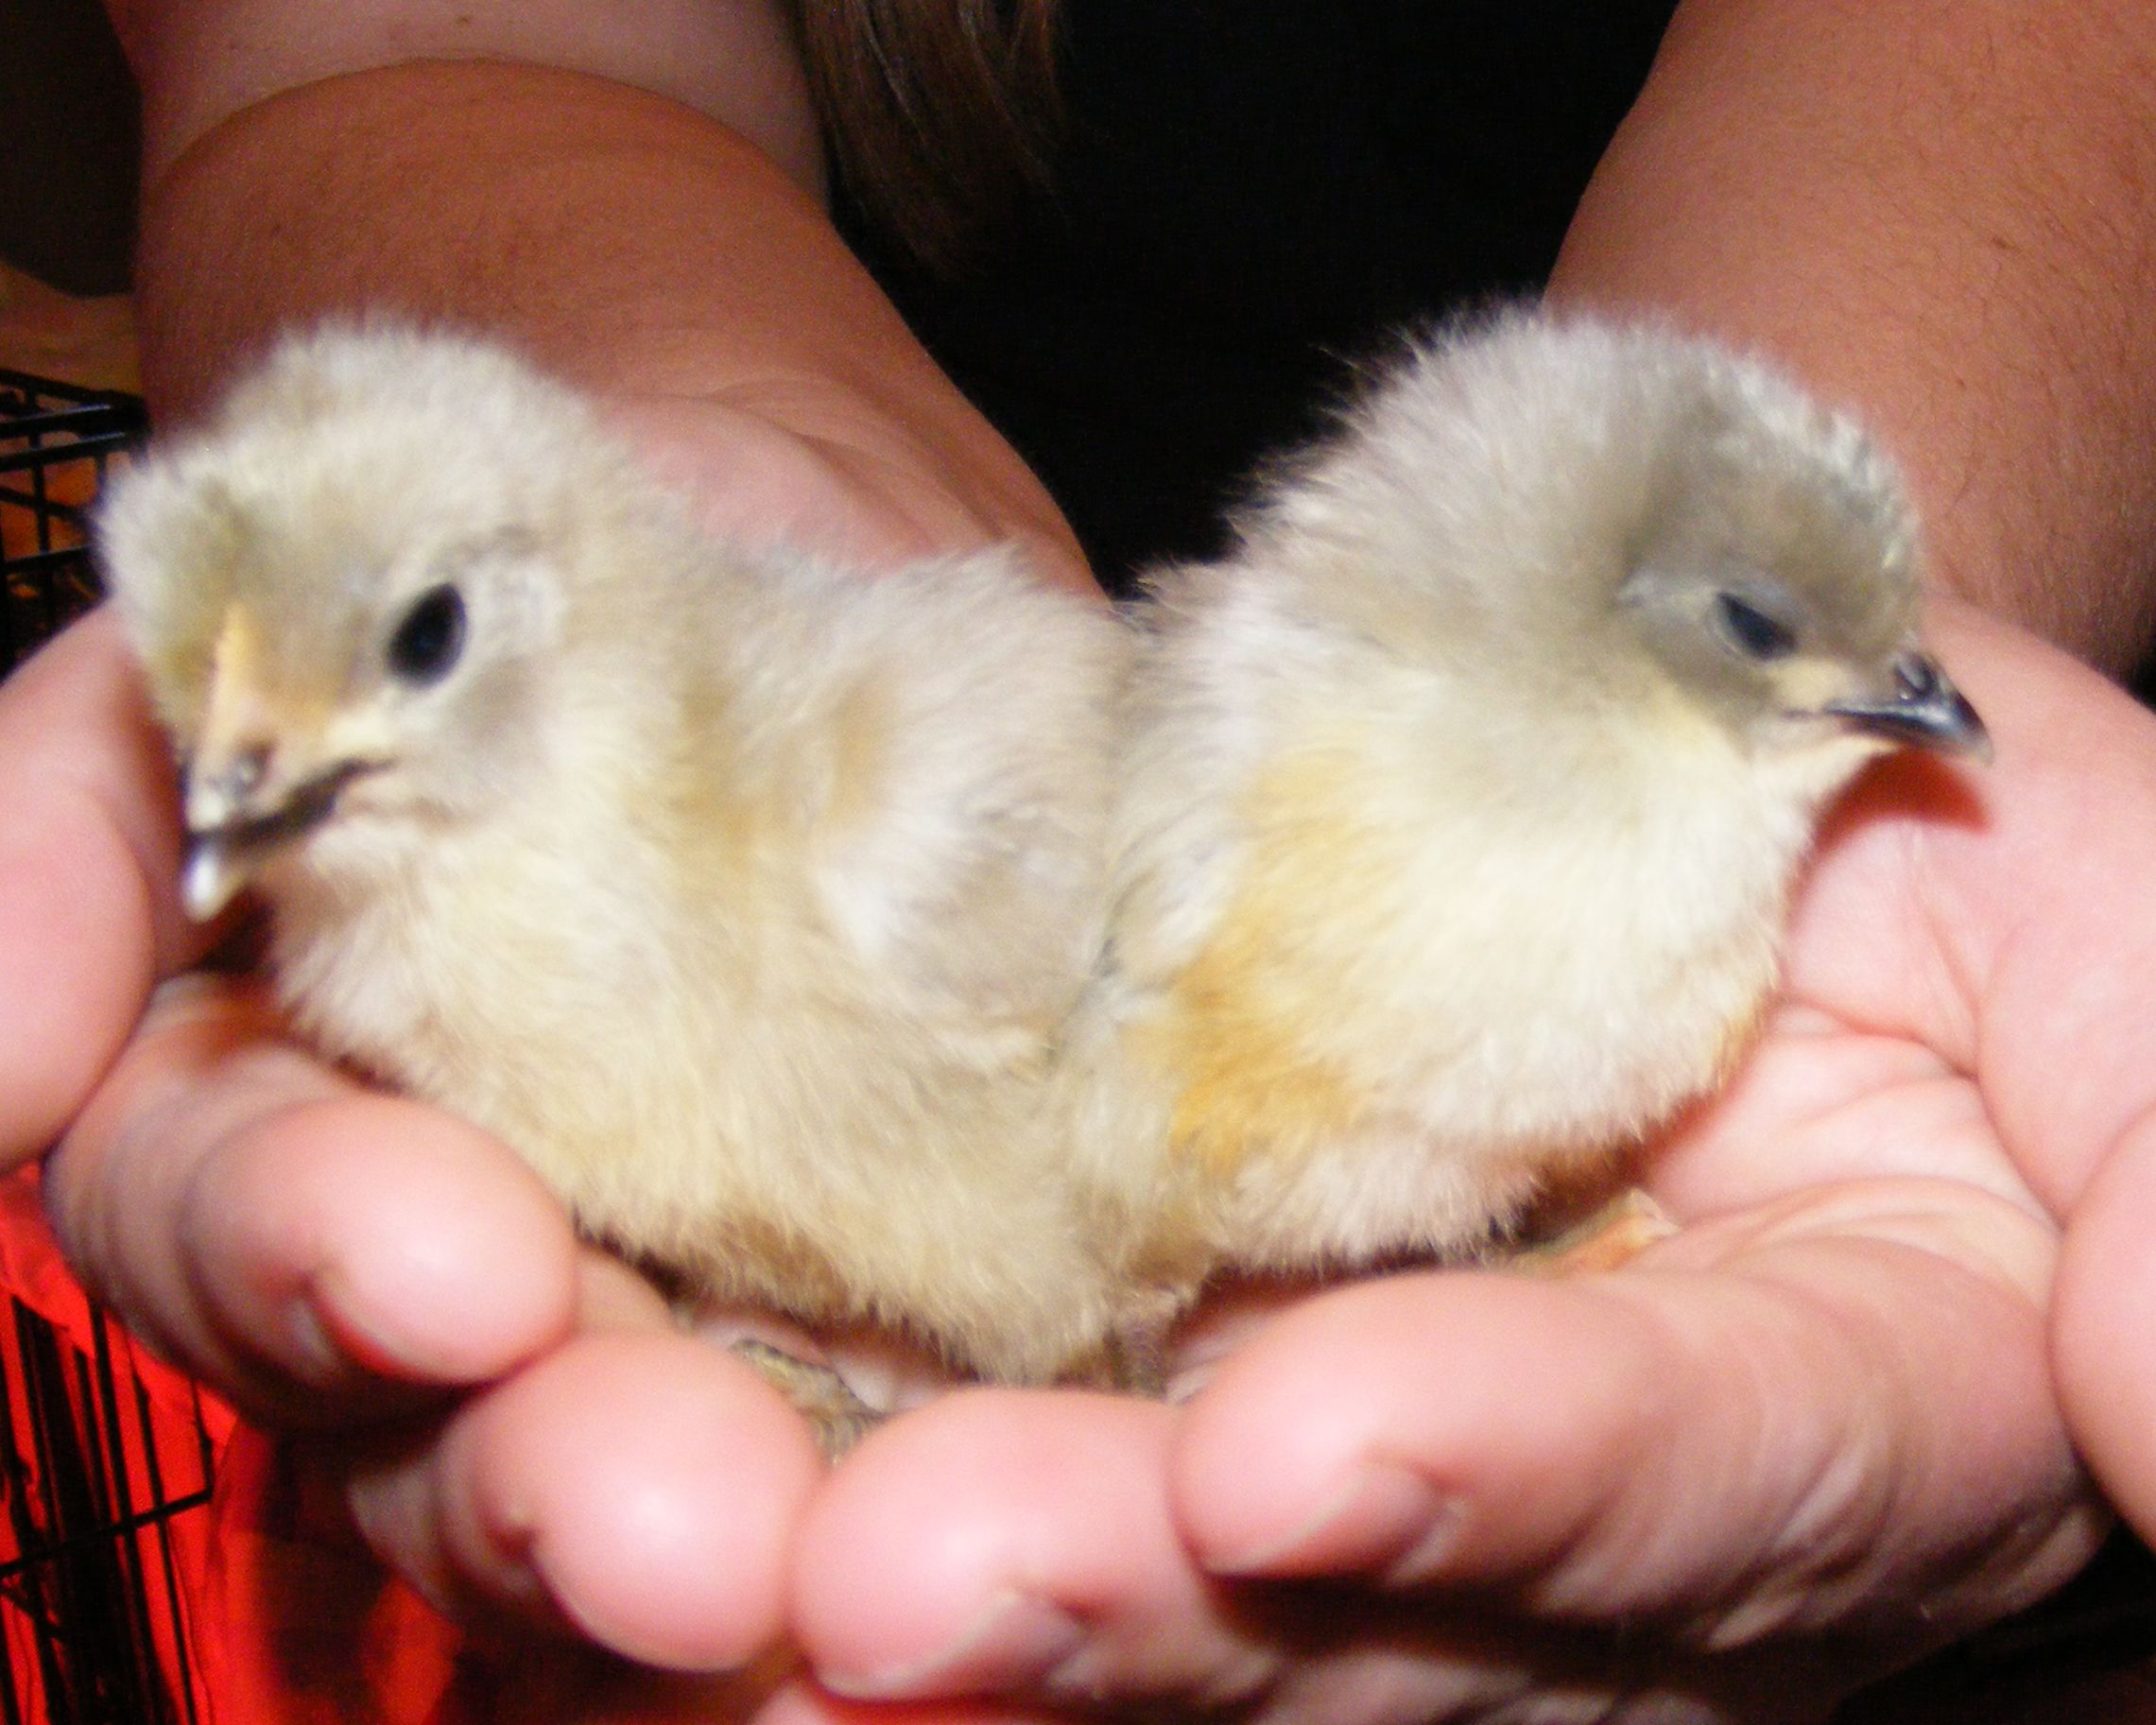 Al And Loretta Our Mascot Chicks Named For Dear Friends Who Helped Us Purchase The Land For Our Homestead Lavendar Orpington Bluish Lavendar Guys And Girls